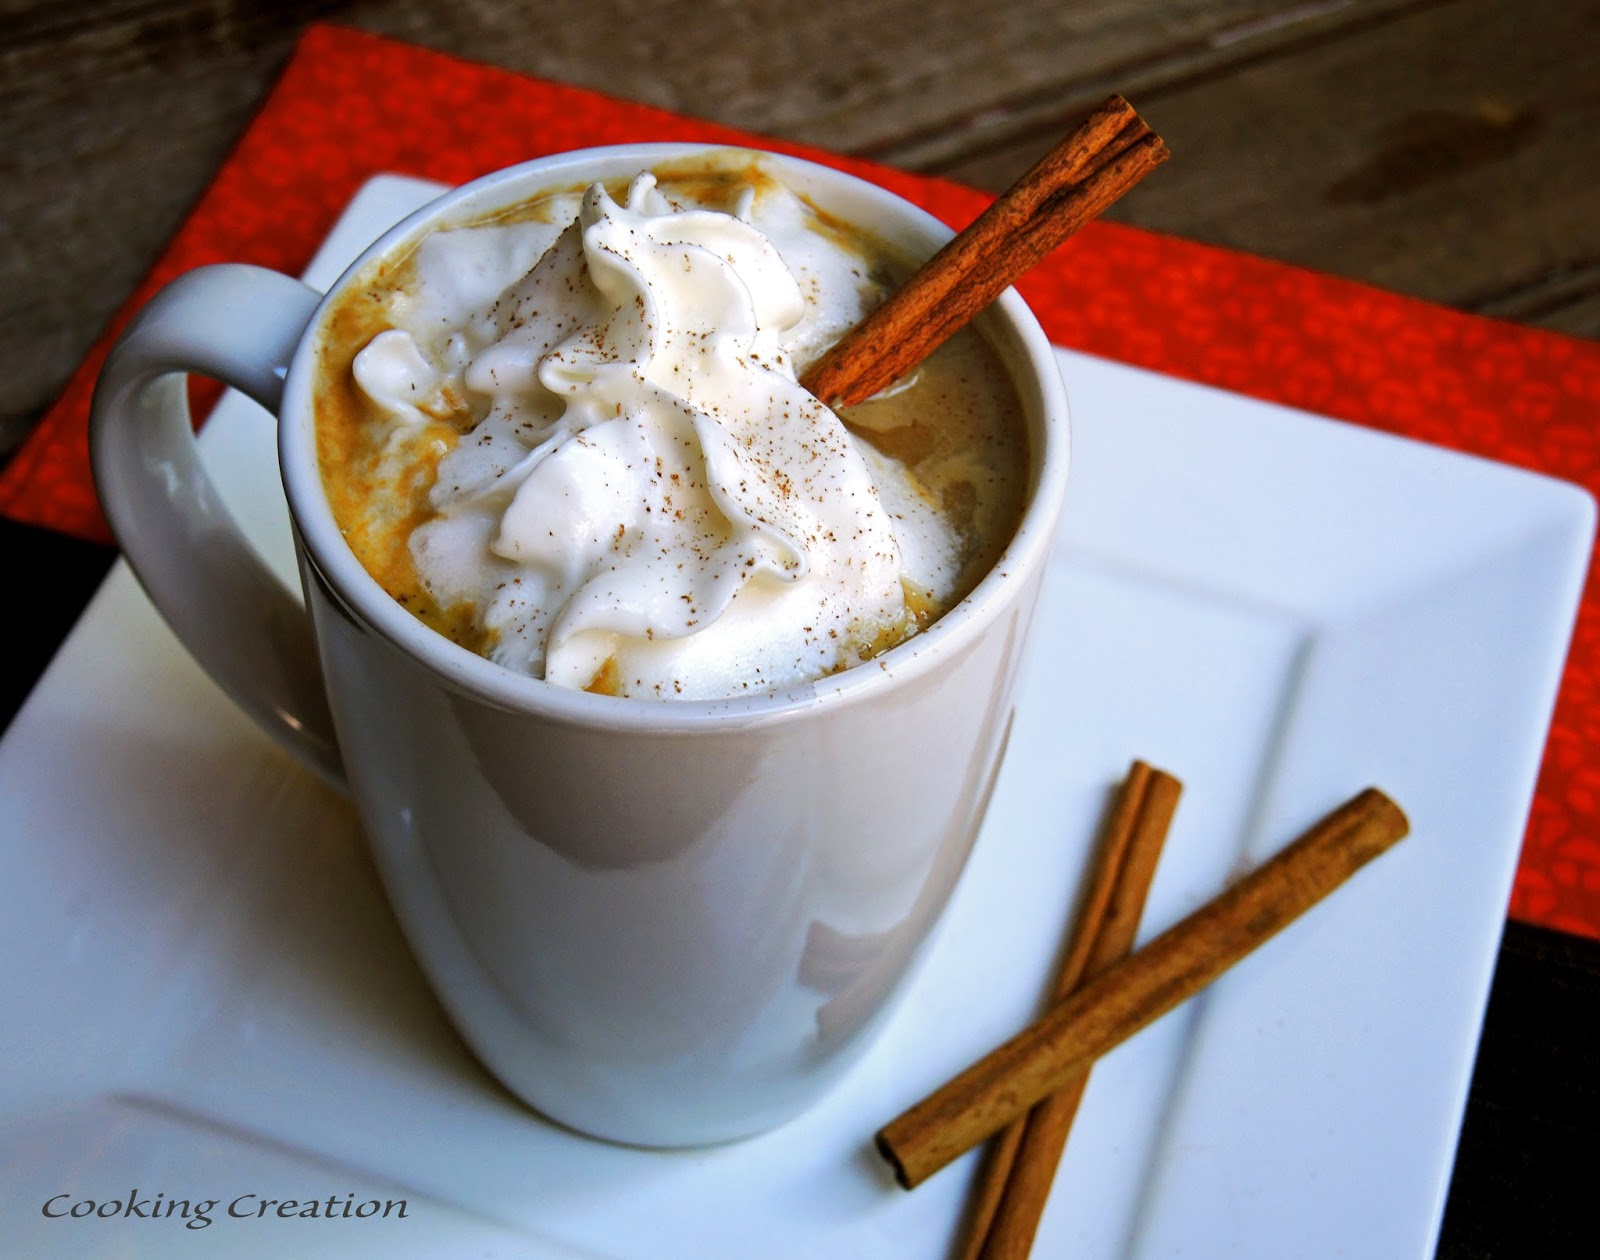 ... pumpkin spice latte. Go ahead - you deserve it! Pour in a little rum